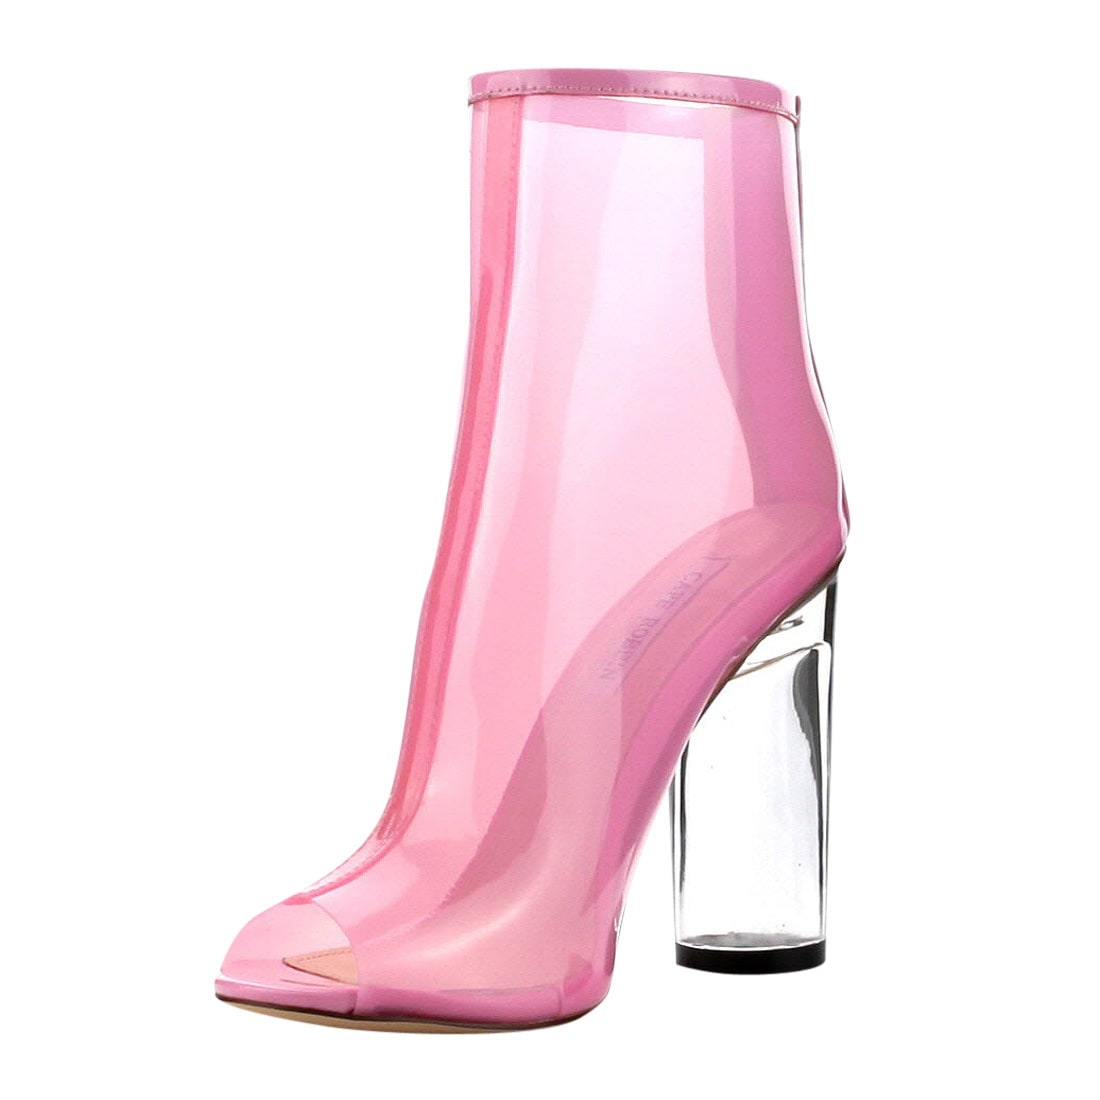 bc122a00ee0 Shop CAPE ROBBIN FF66 Women s Peep Toe Block Clear Lucite Heel Ankle Booties  - Free Shipping Today - Overstock - 13312422